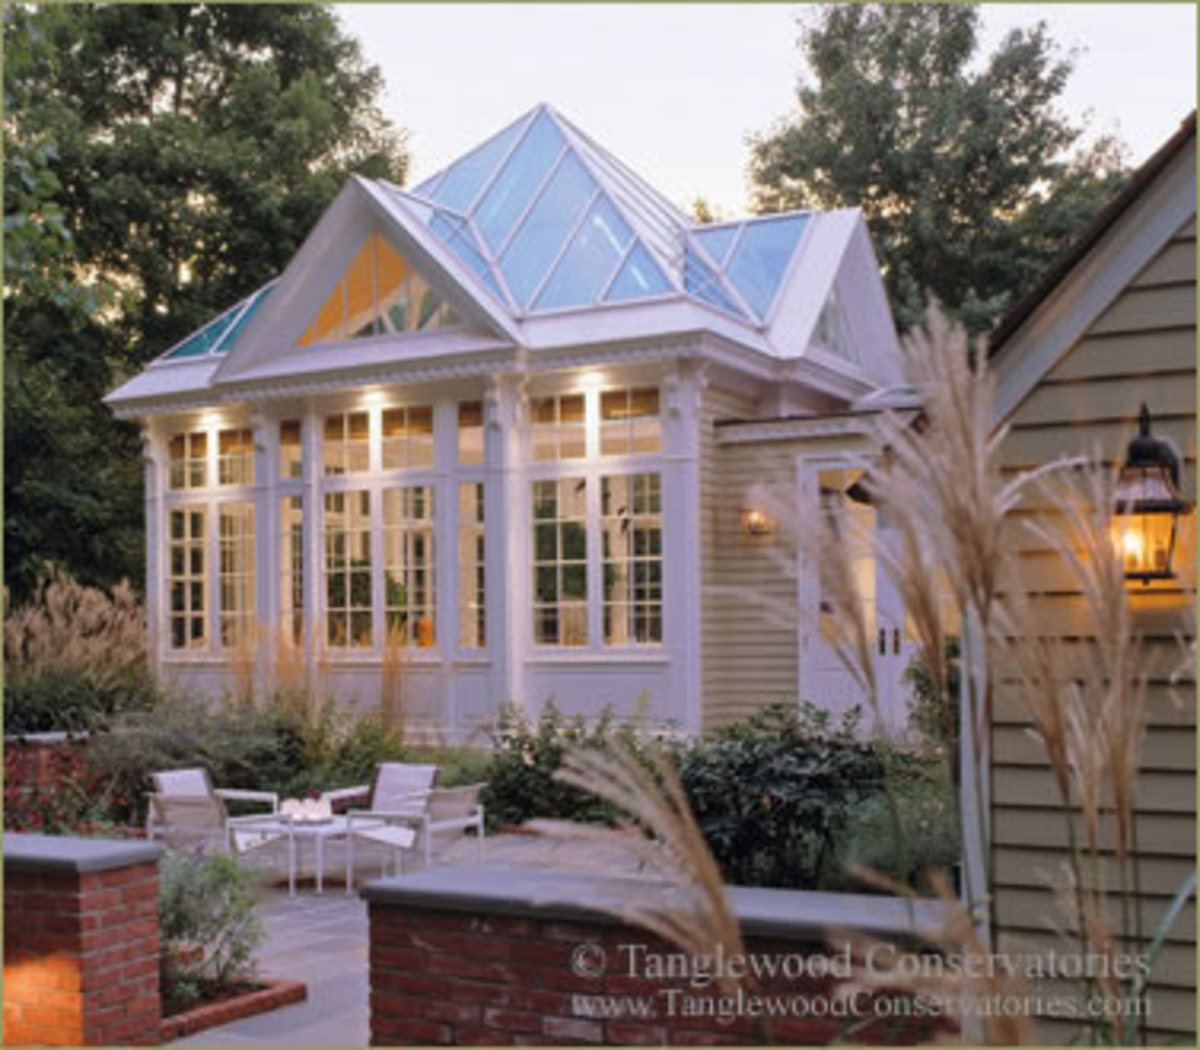 2016 Palladio Awards New Mediterranean Style Traditional: Tanglewood Conservatories